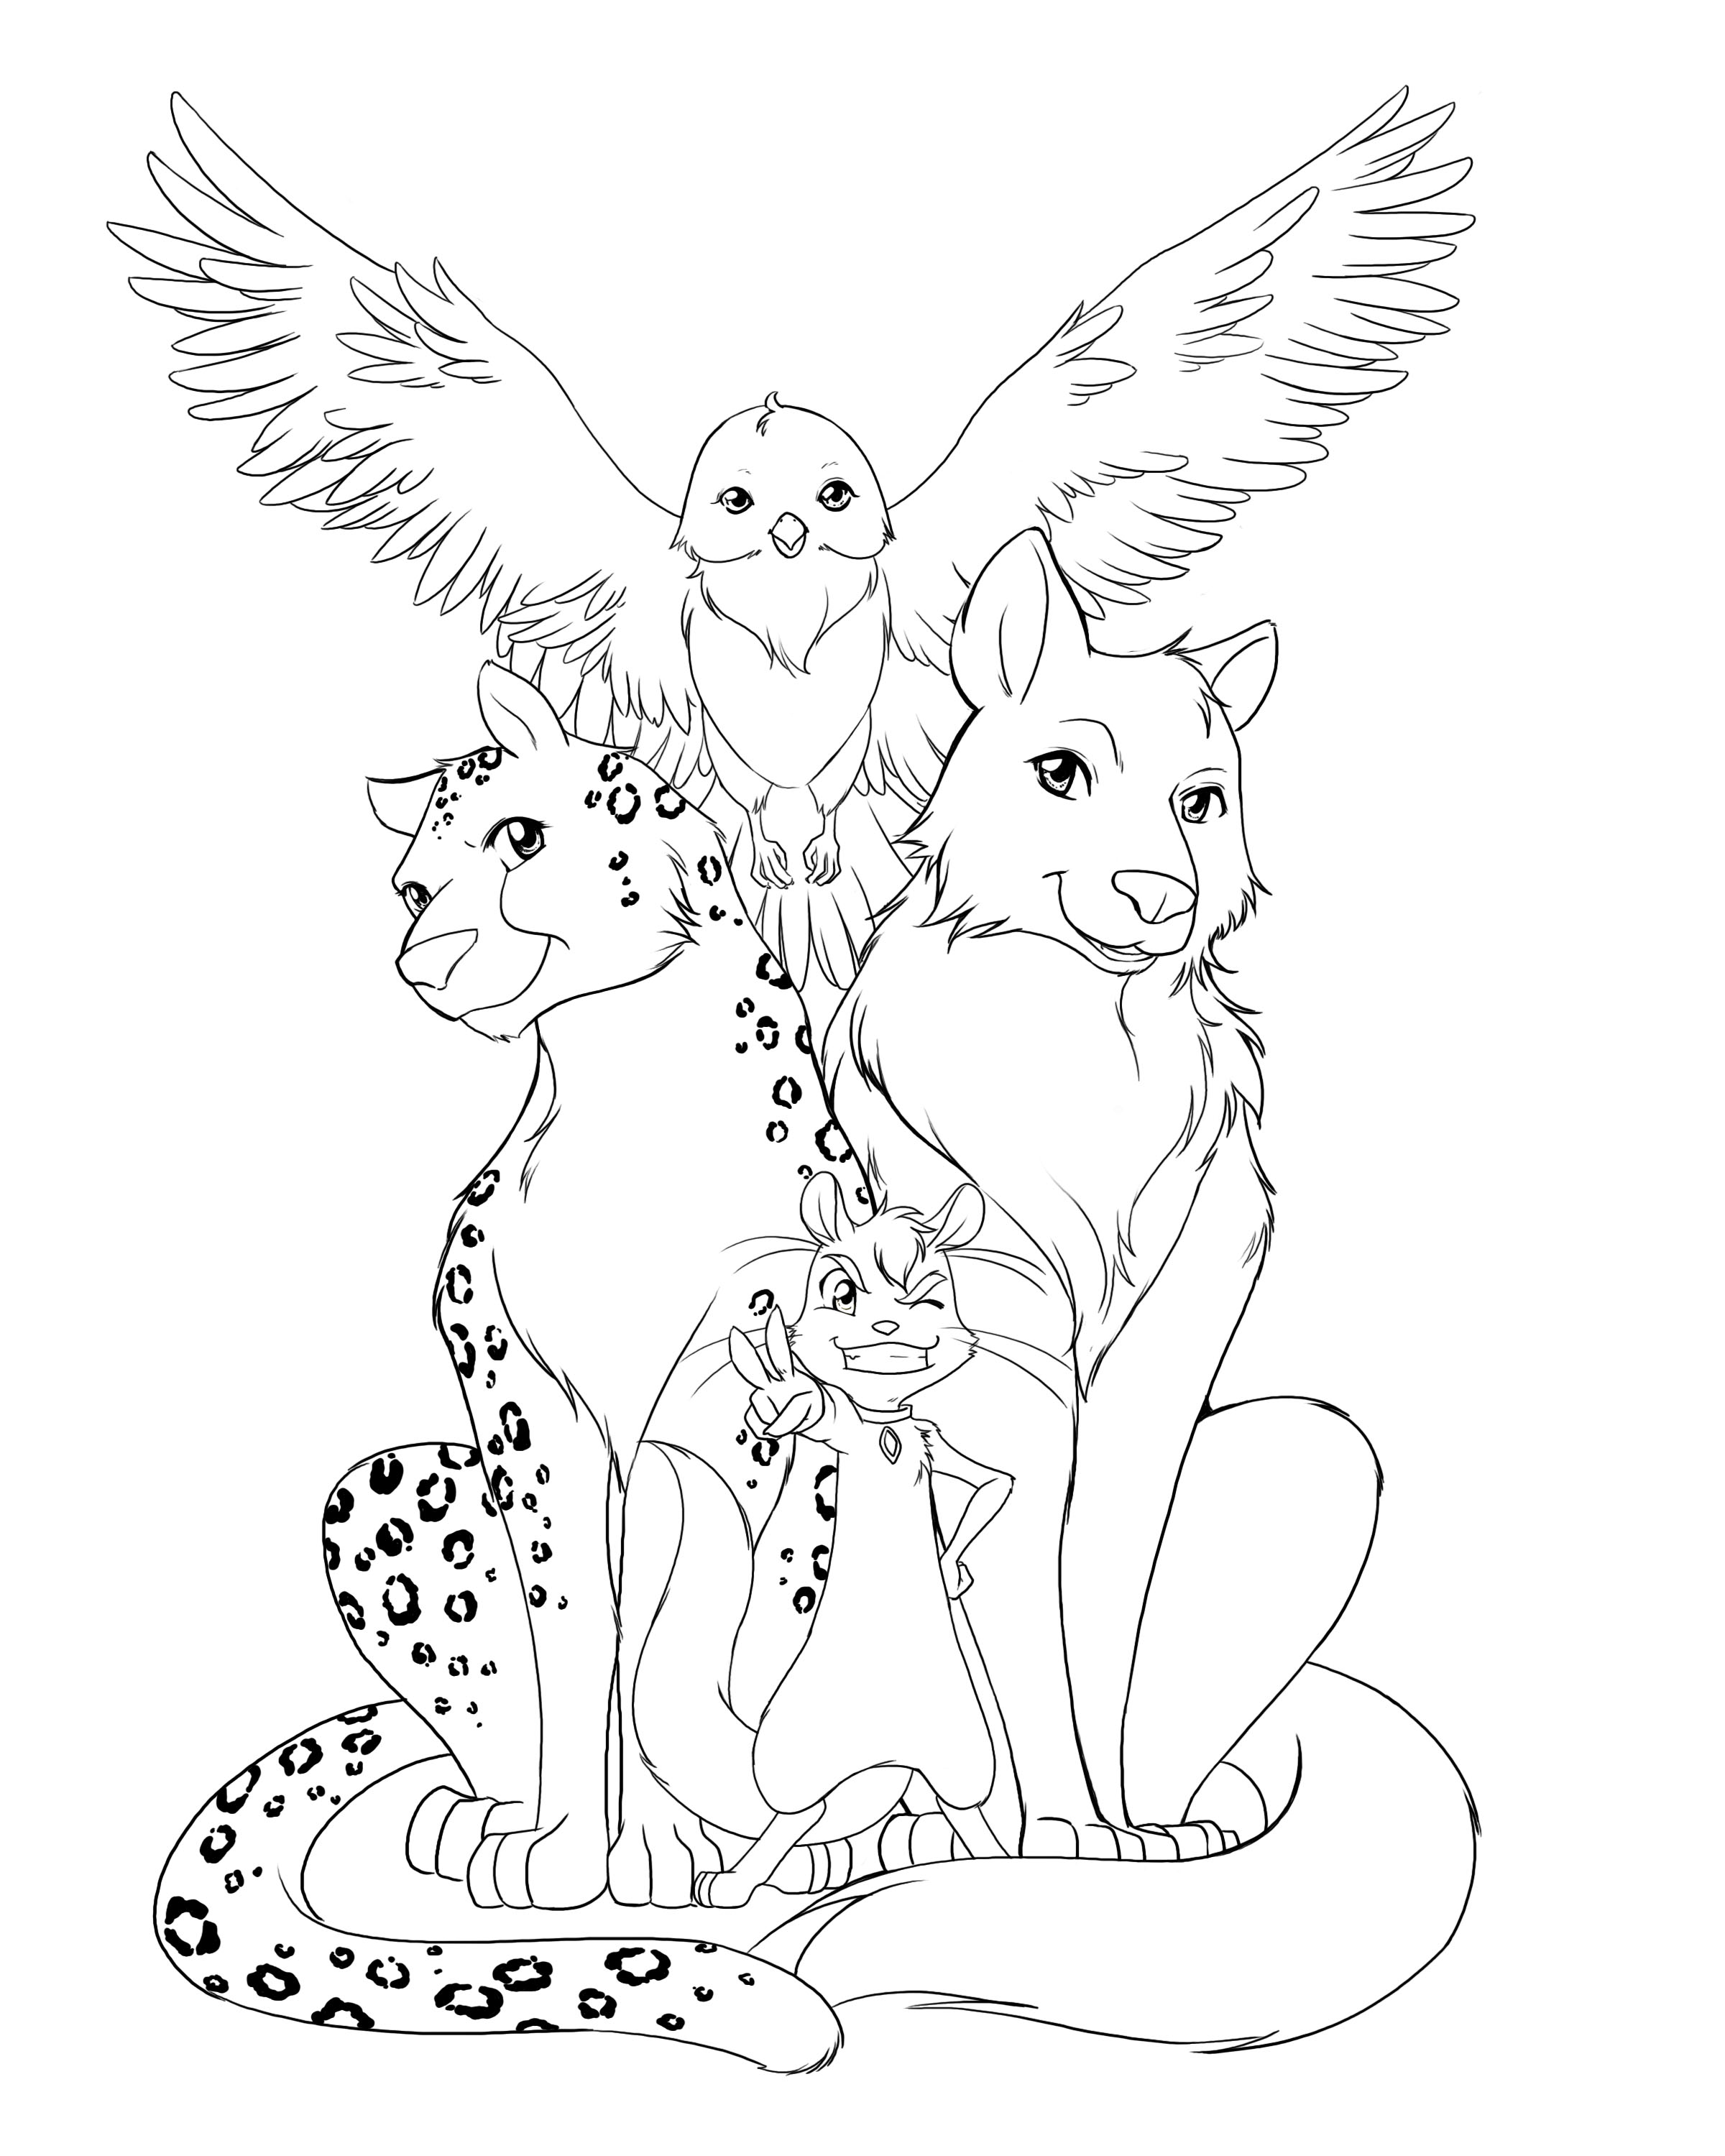 COLORING BOOK SHAPES Free Coloring